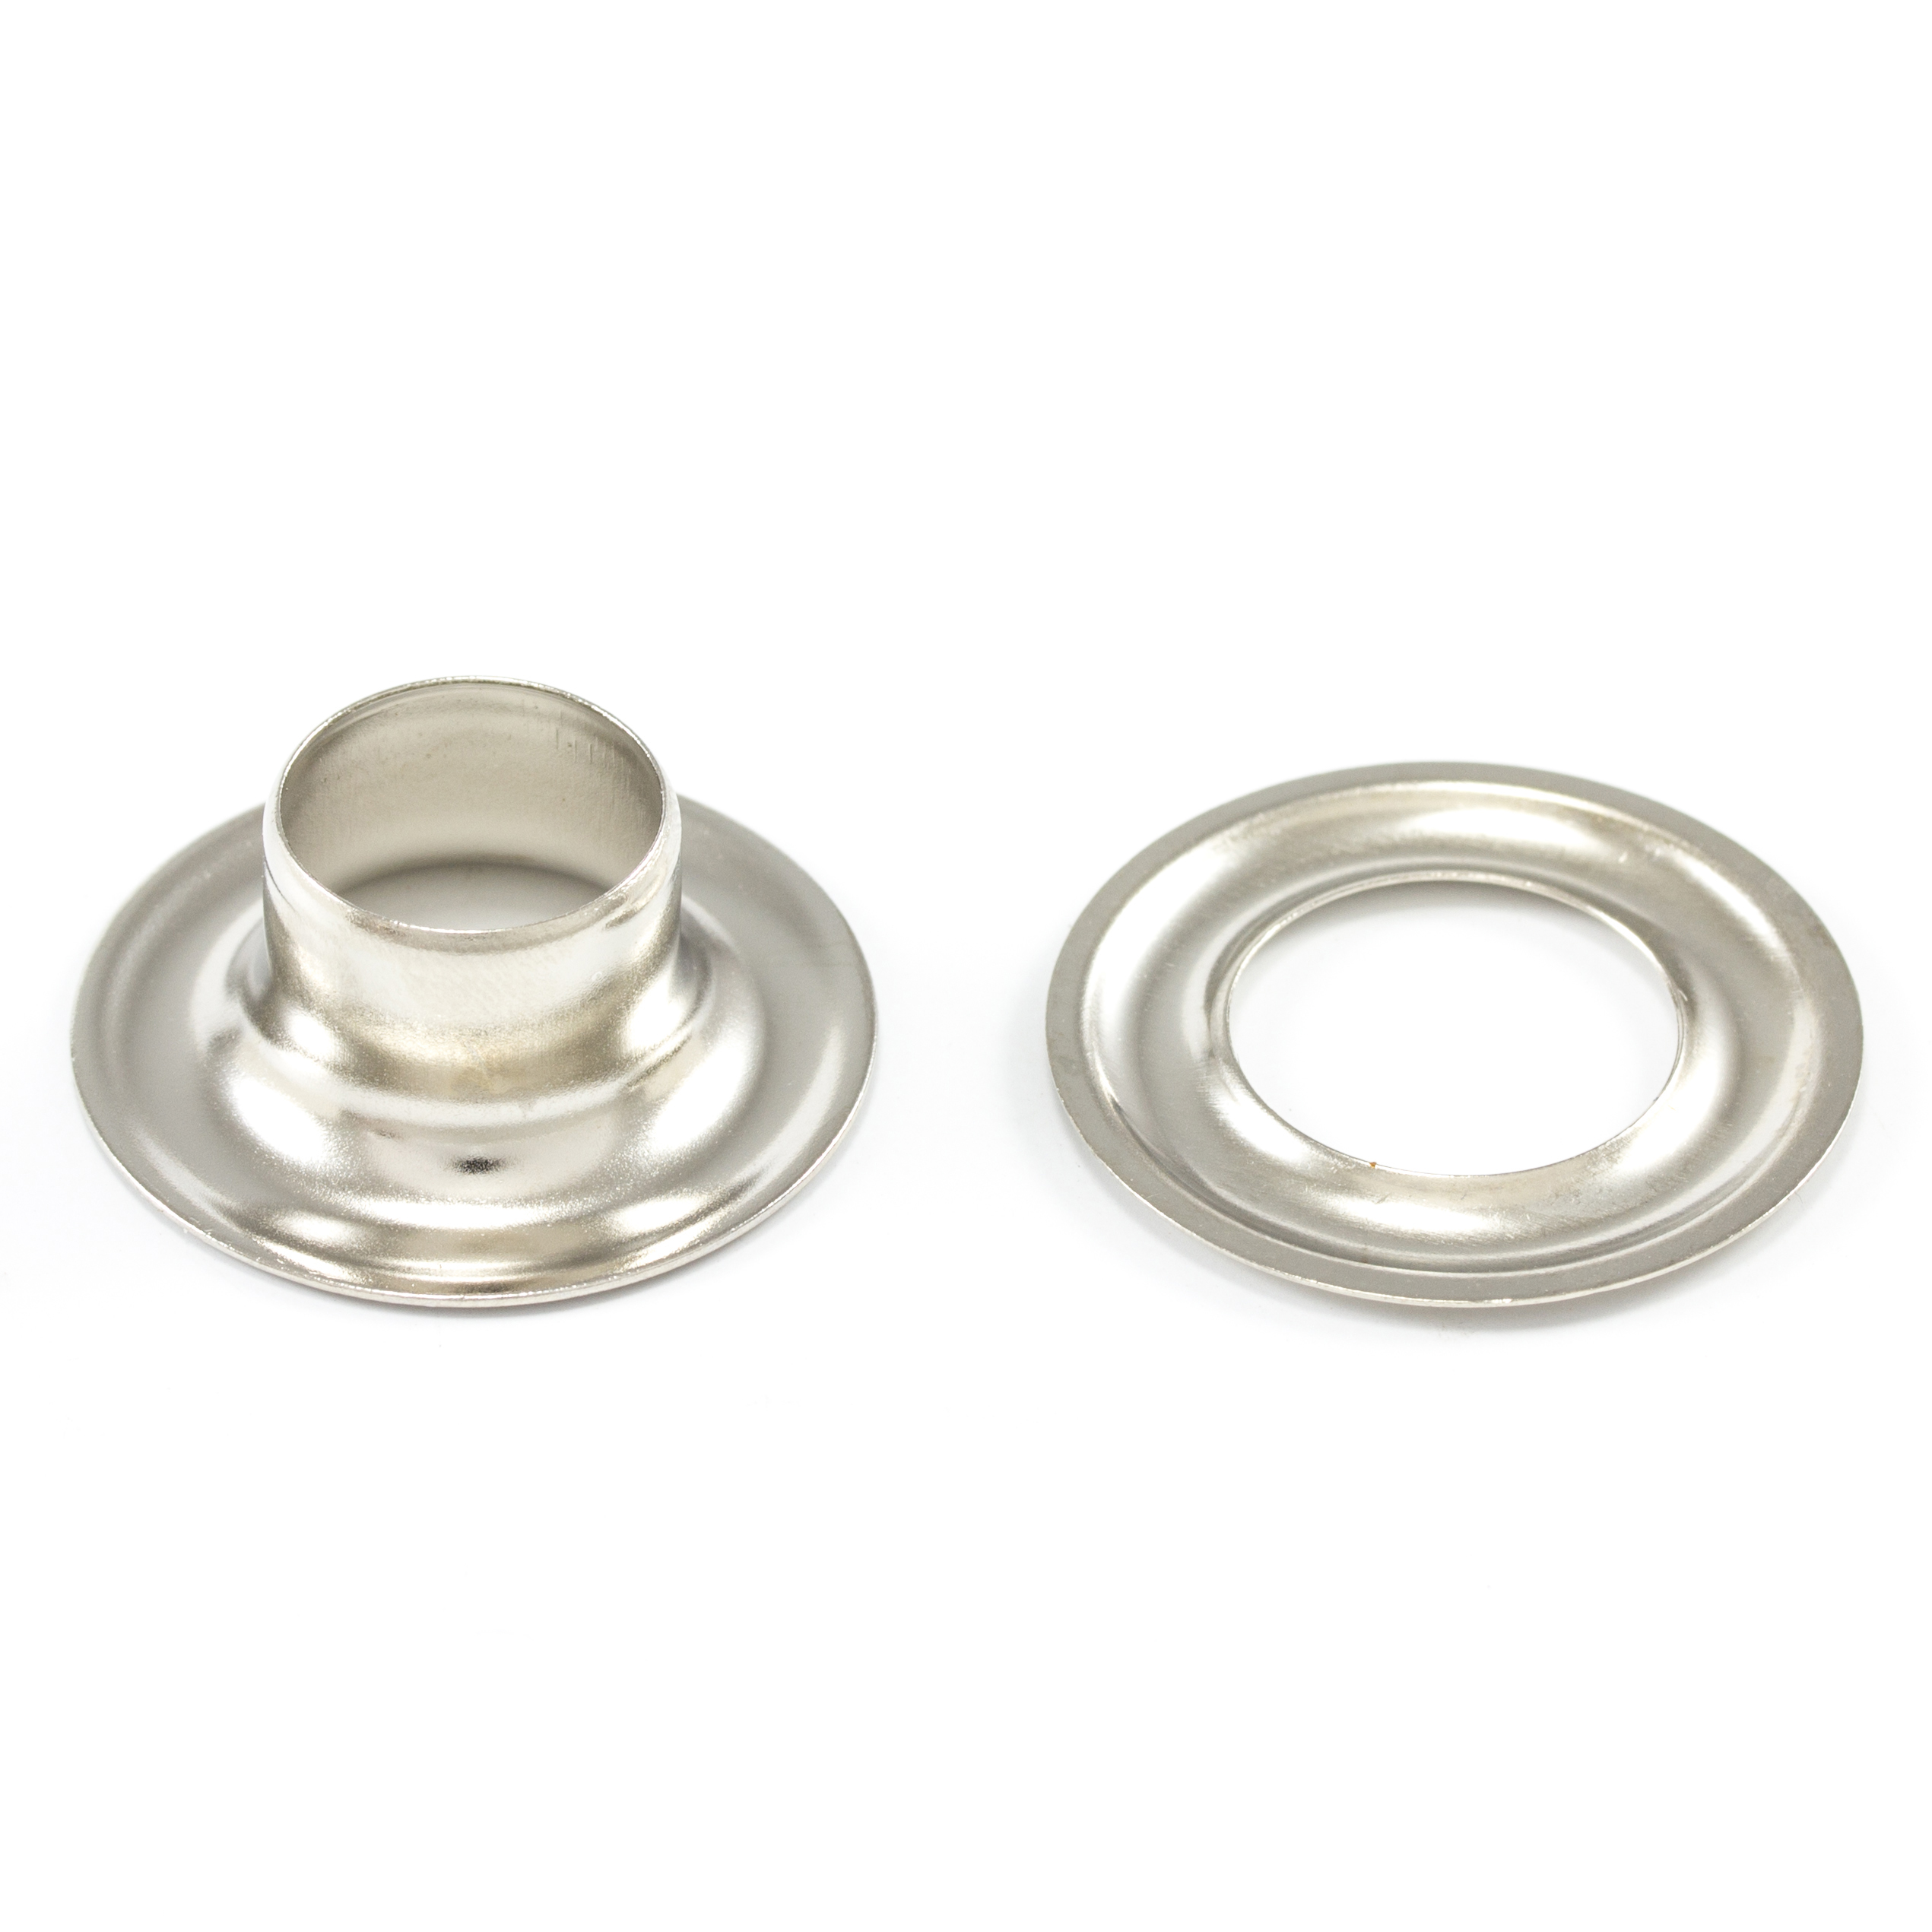 DOT Grommet with Plain Washer #4 Nickel Plated Brass 1/2